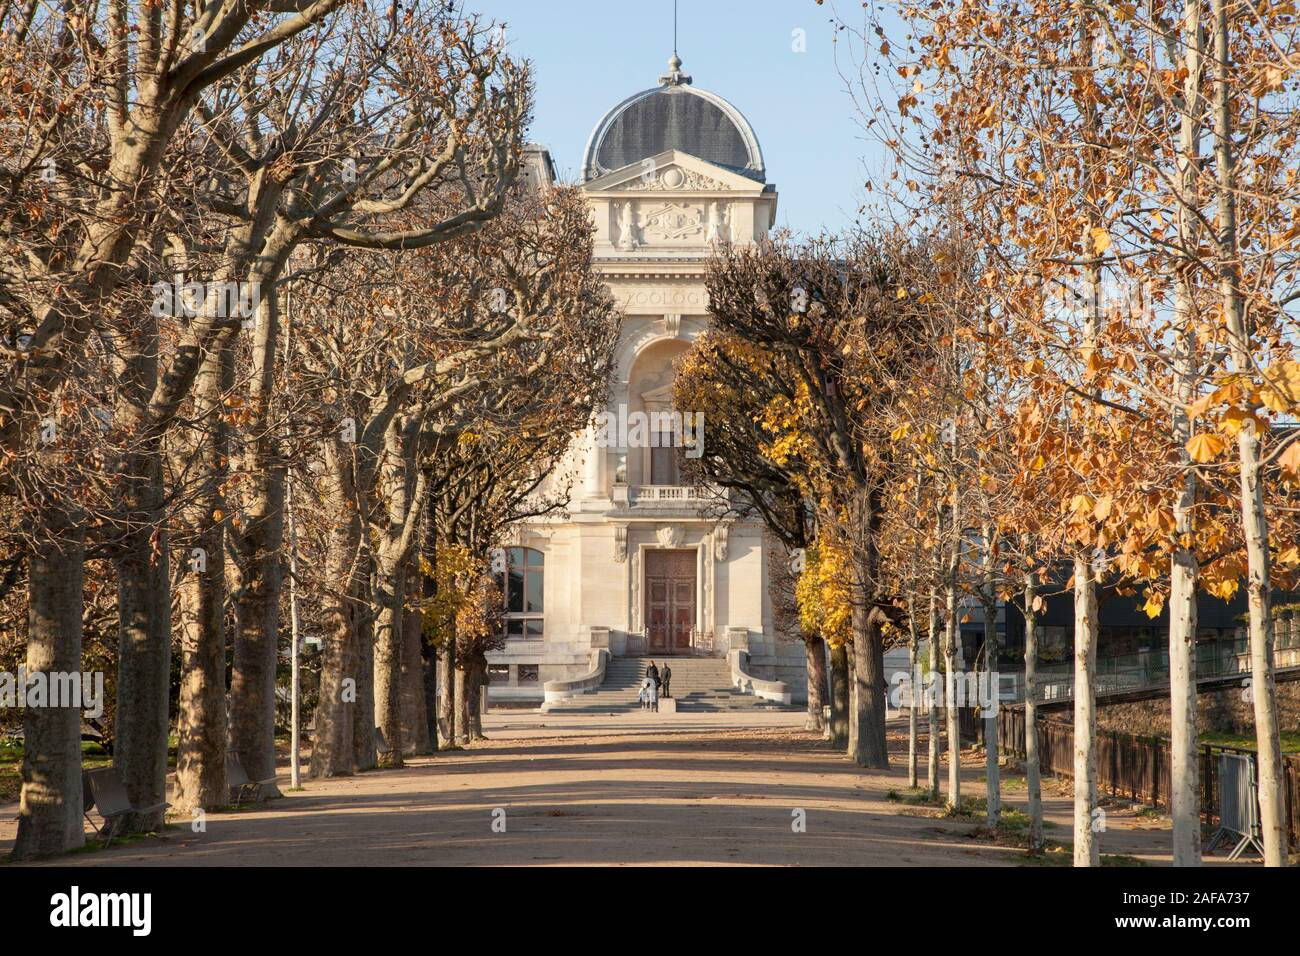 The facde of the 19th Century building housing the Grand Gallery of Evolution in Jardin des Plantes, Paris Stock Photo